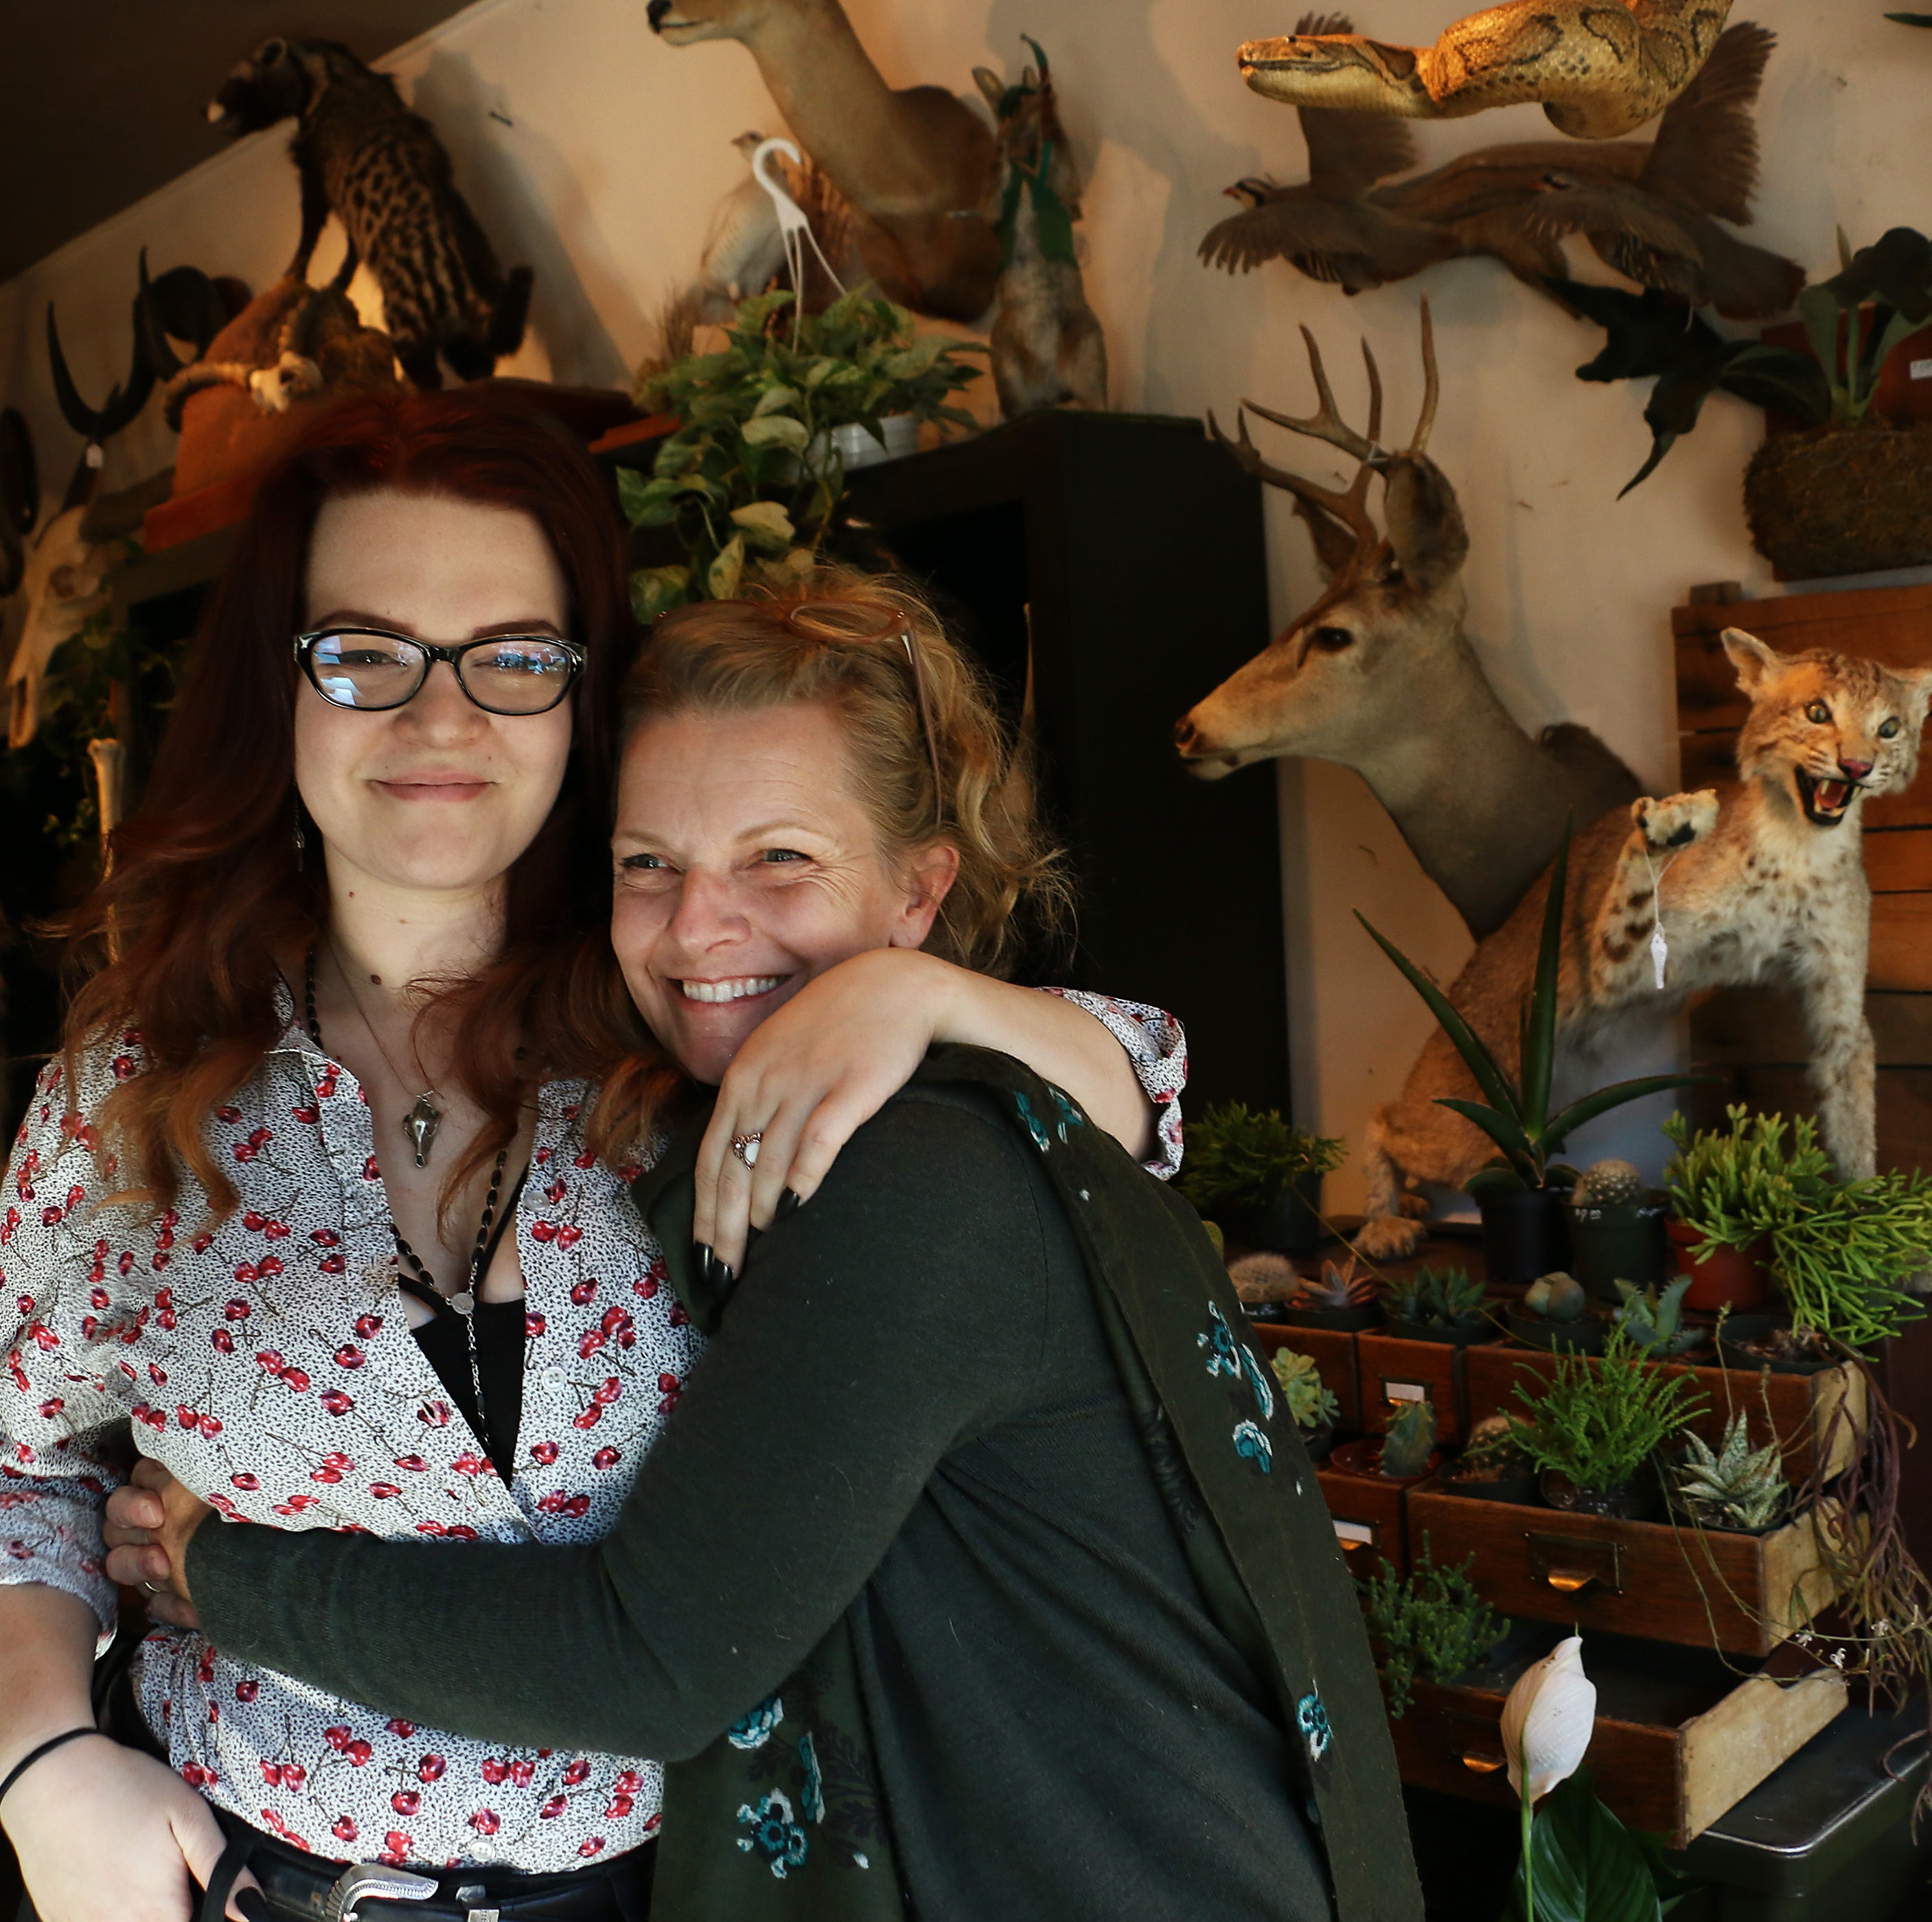 Carcass queens: Reno's mom-daughter taxidermy shop brings dead to life